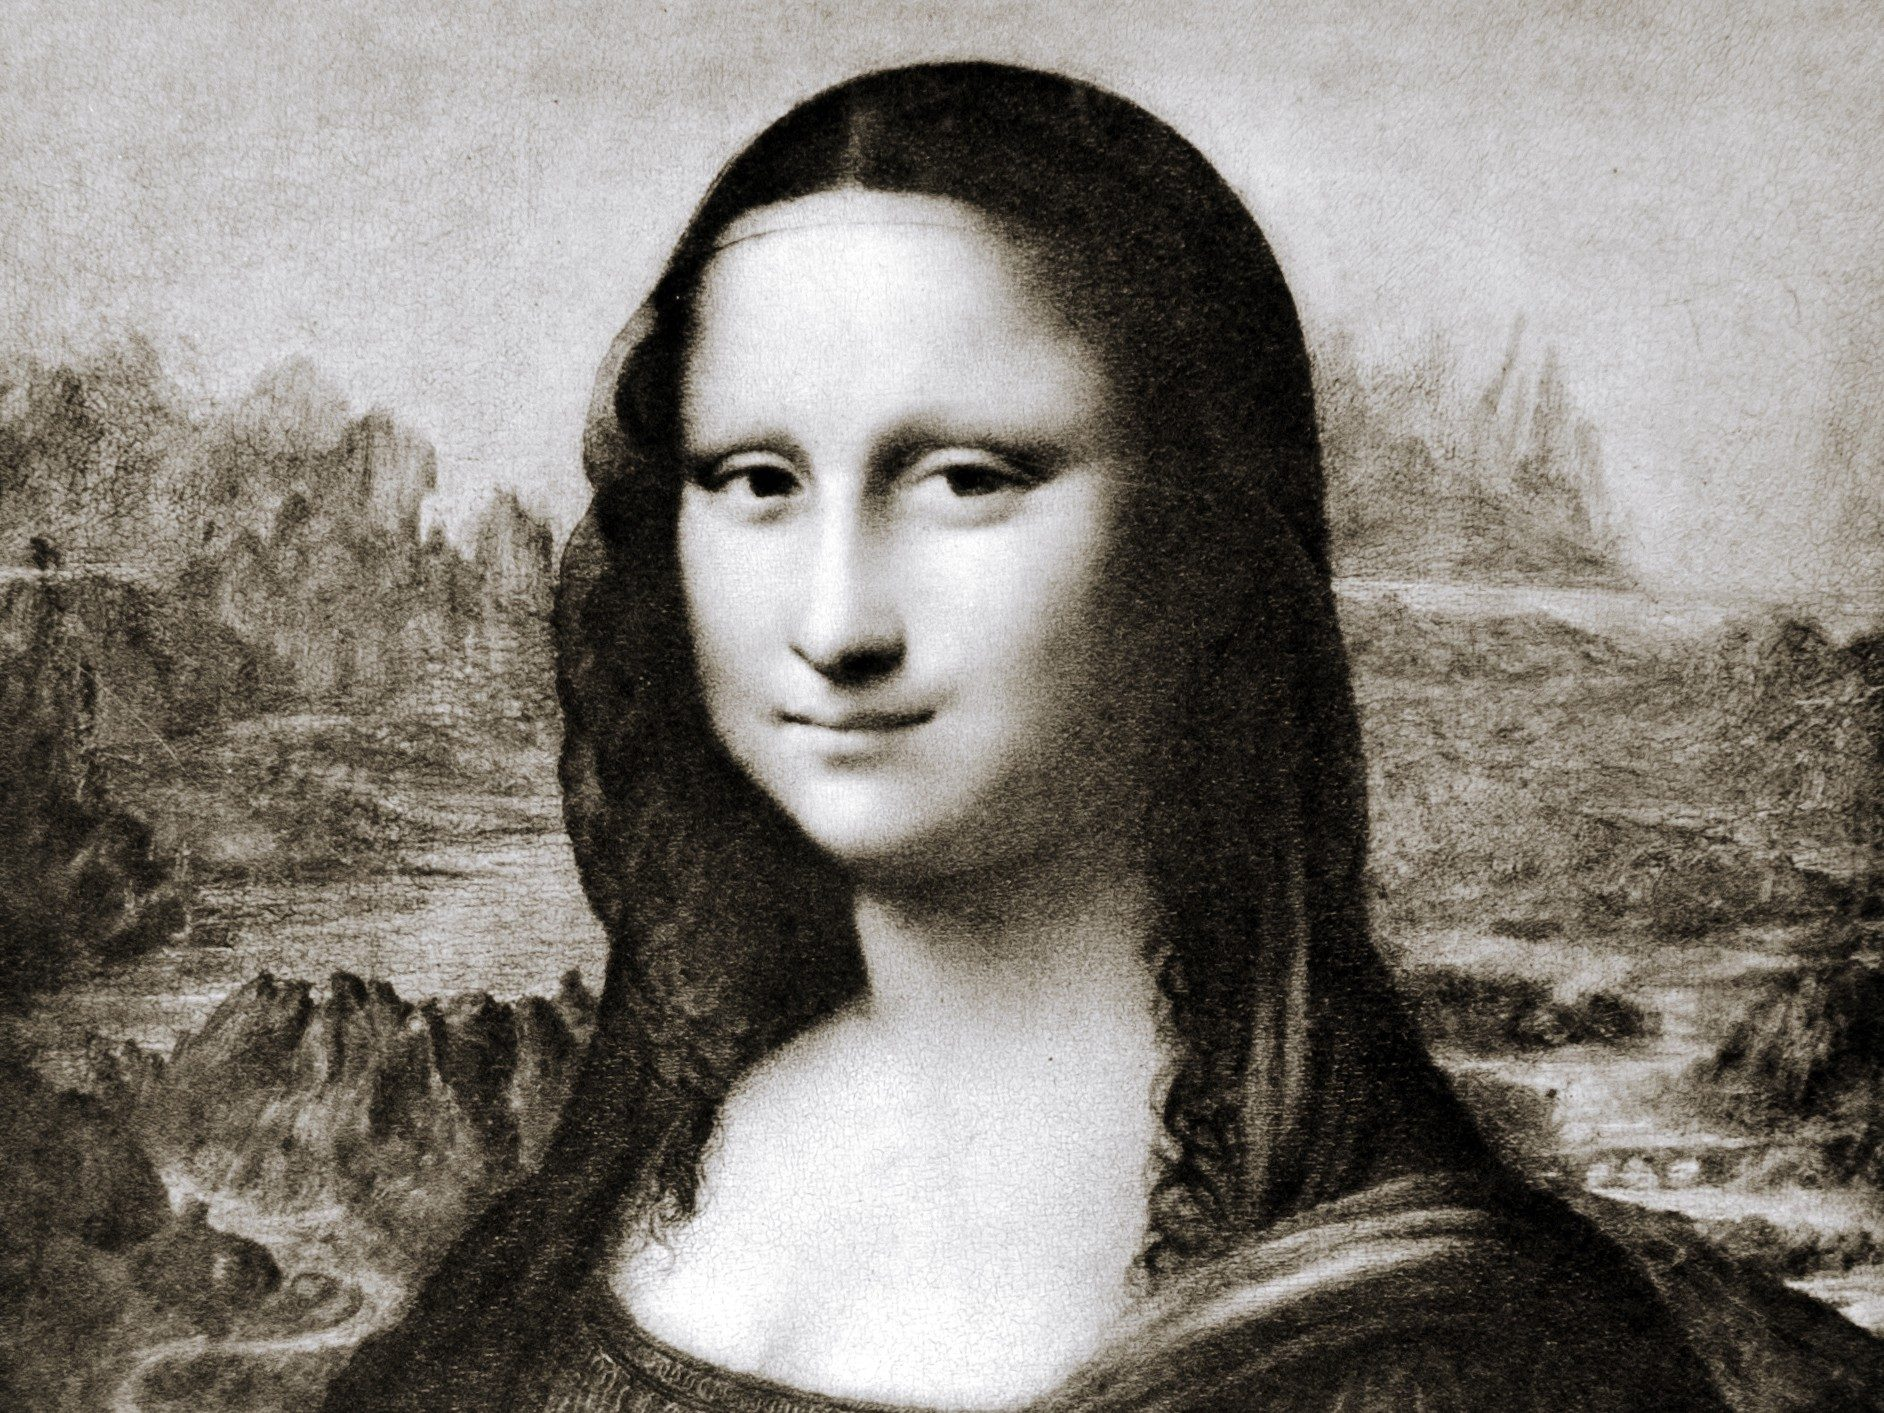 Mona Lisa mystery #3: The broken backdrop.